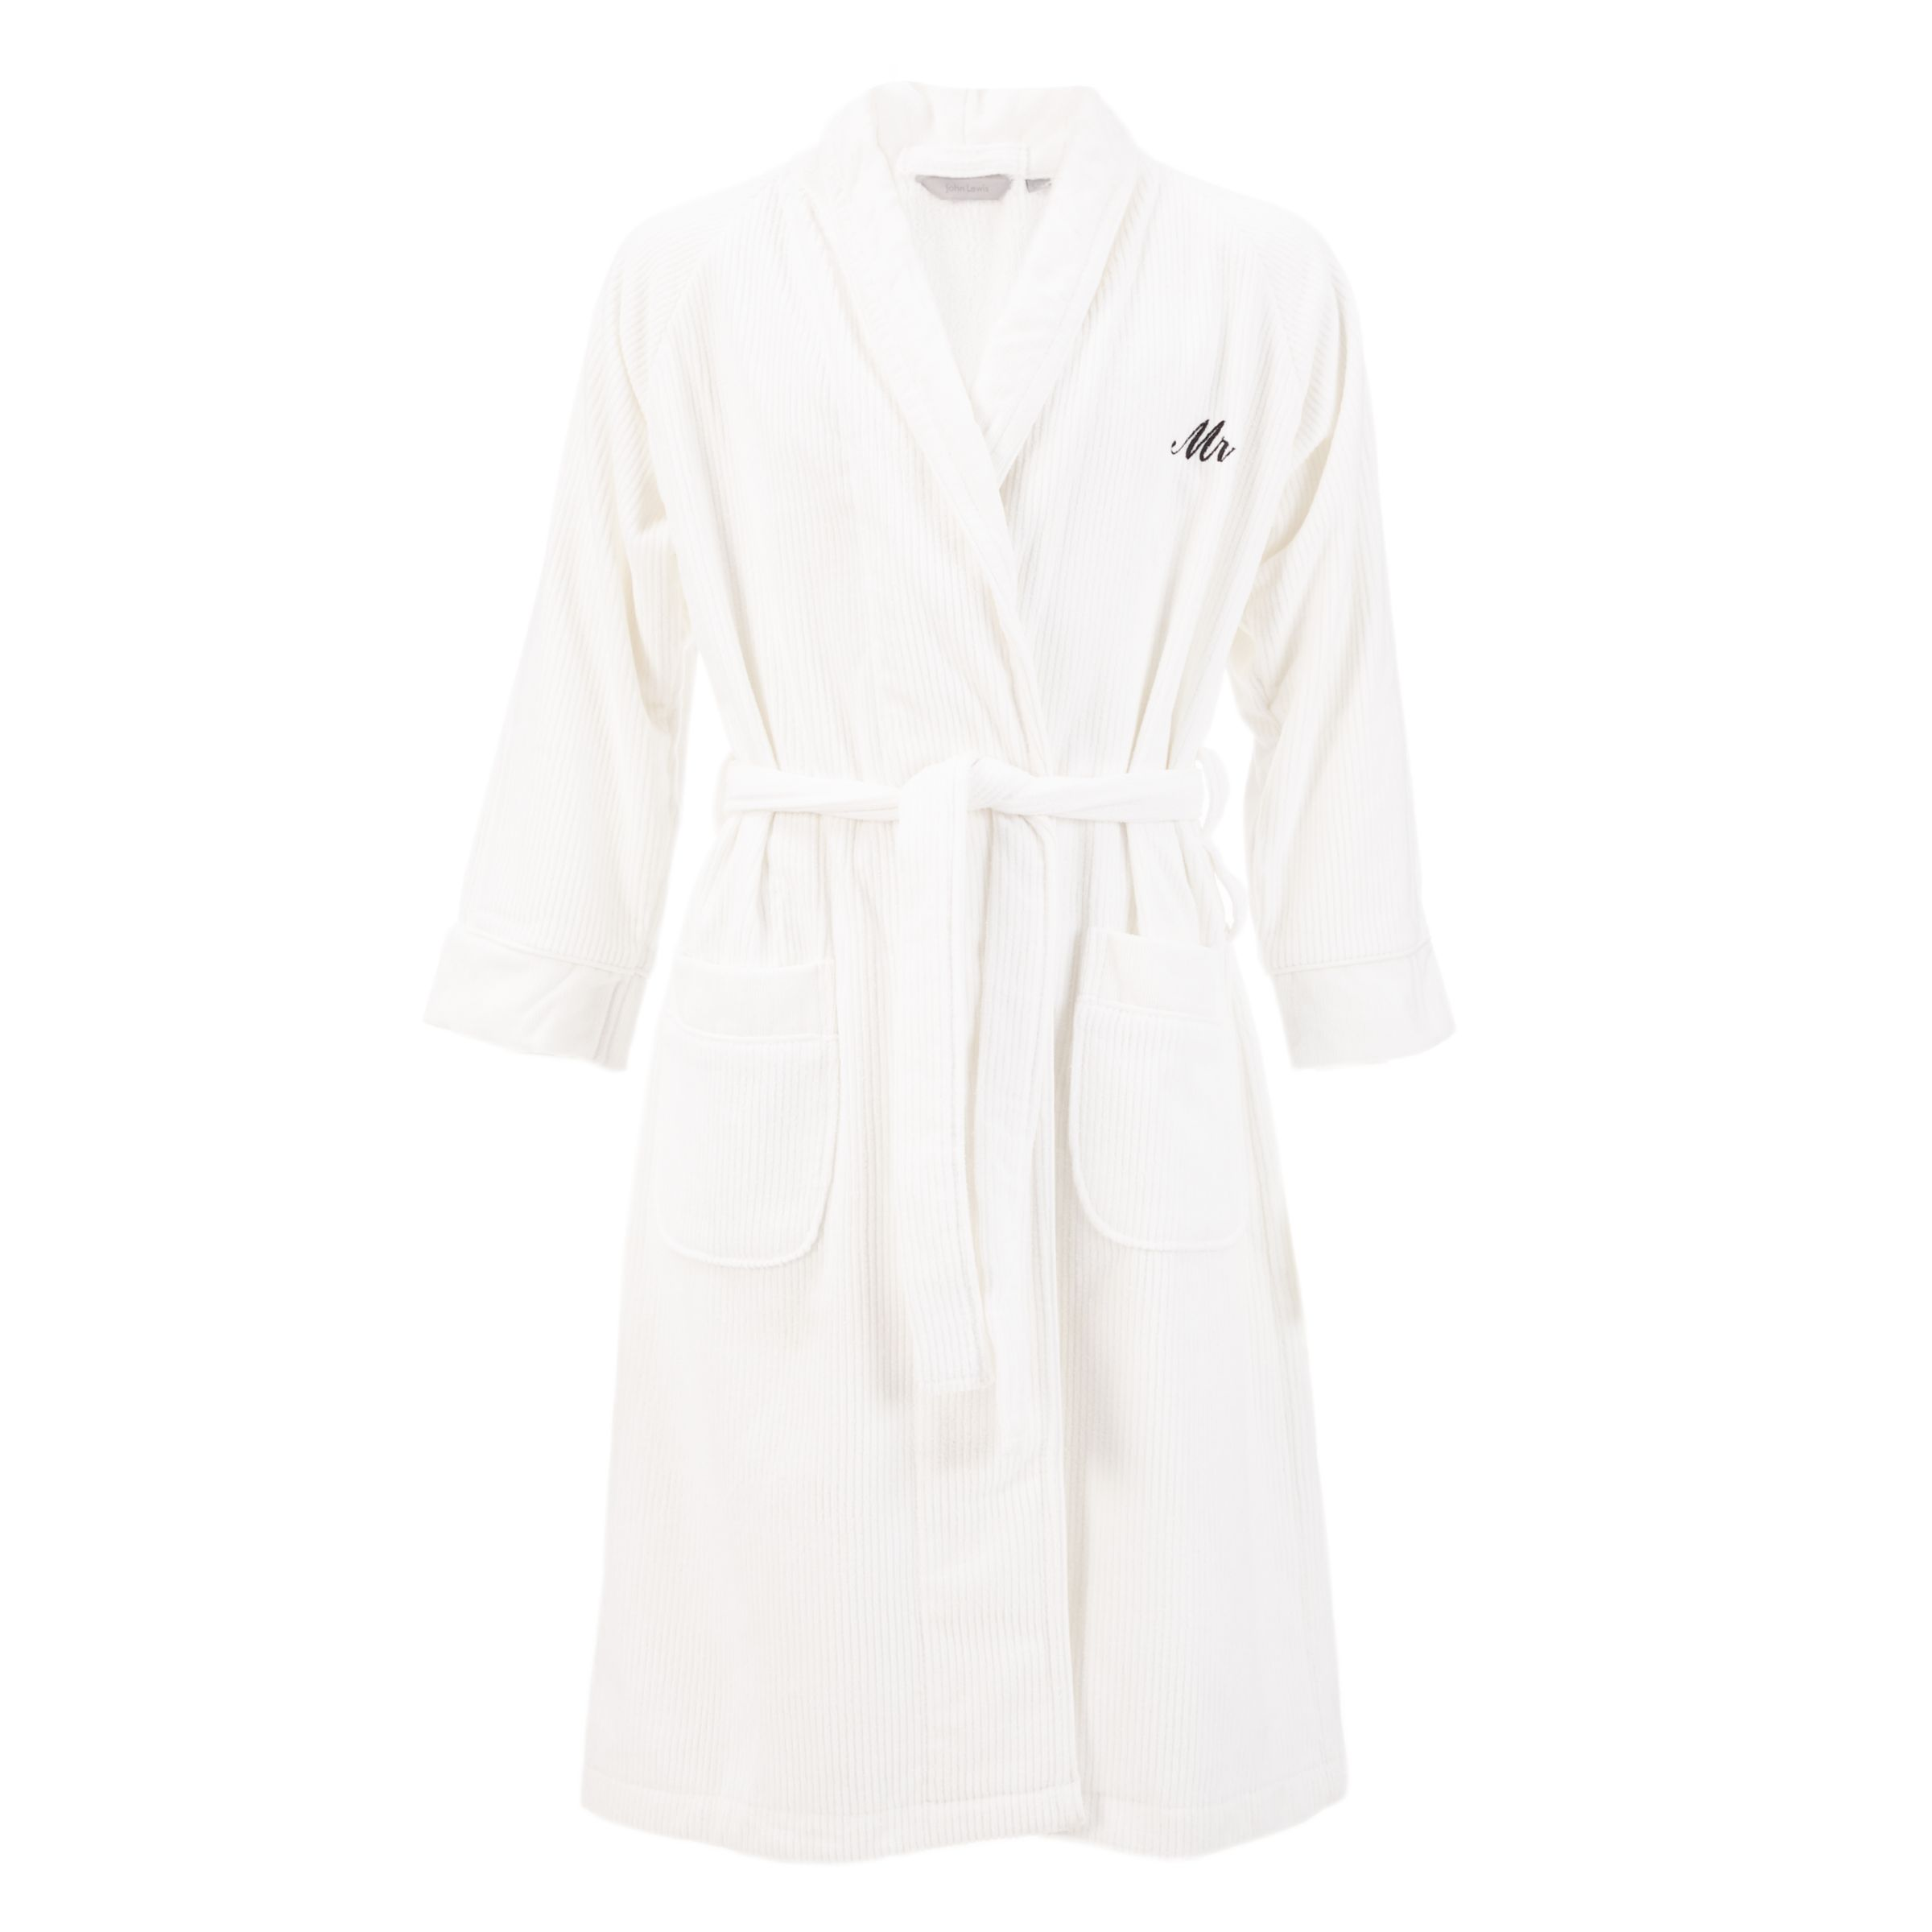 John Lewis Mr Luxury Bathrobe, White